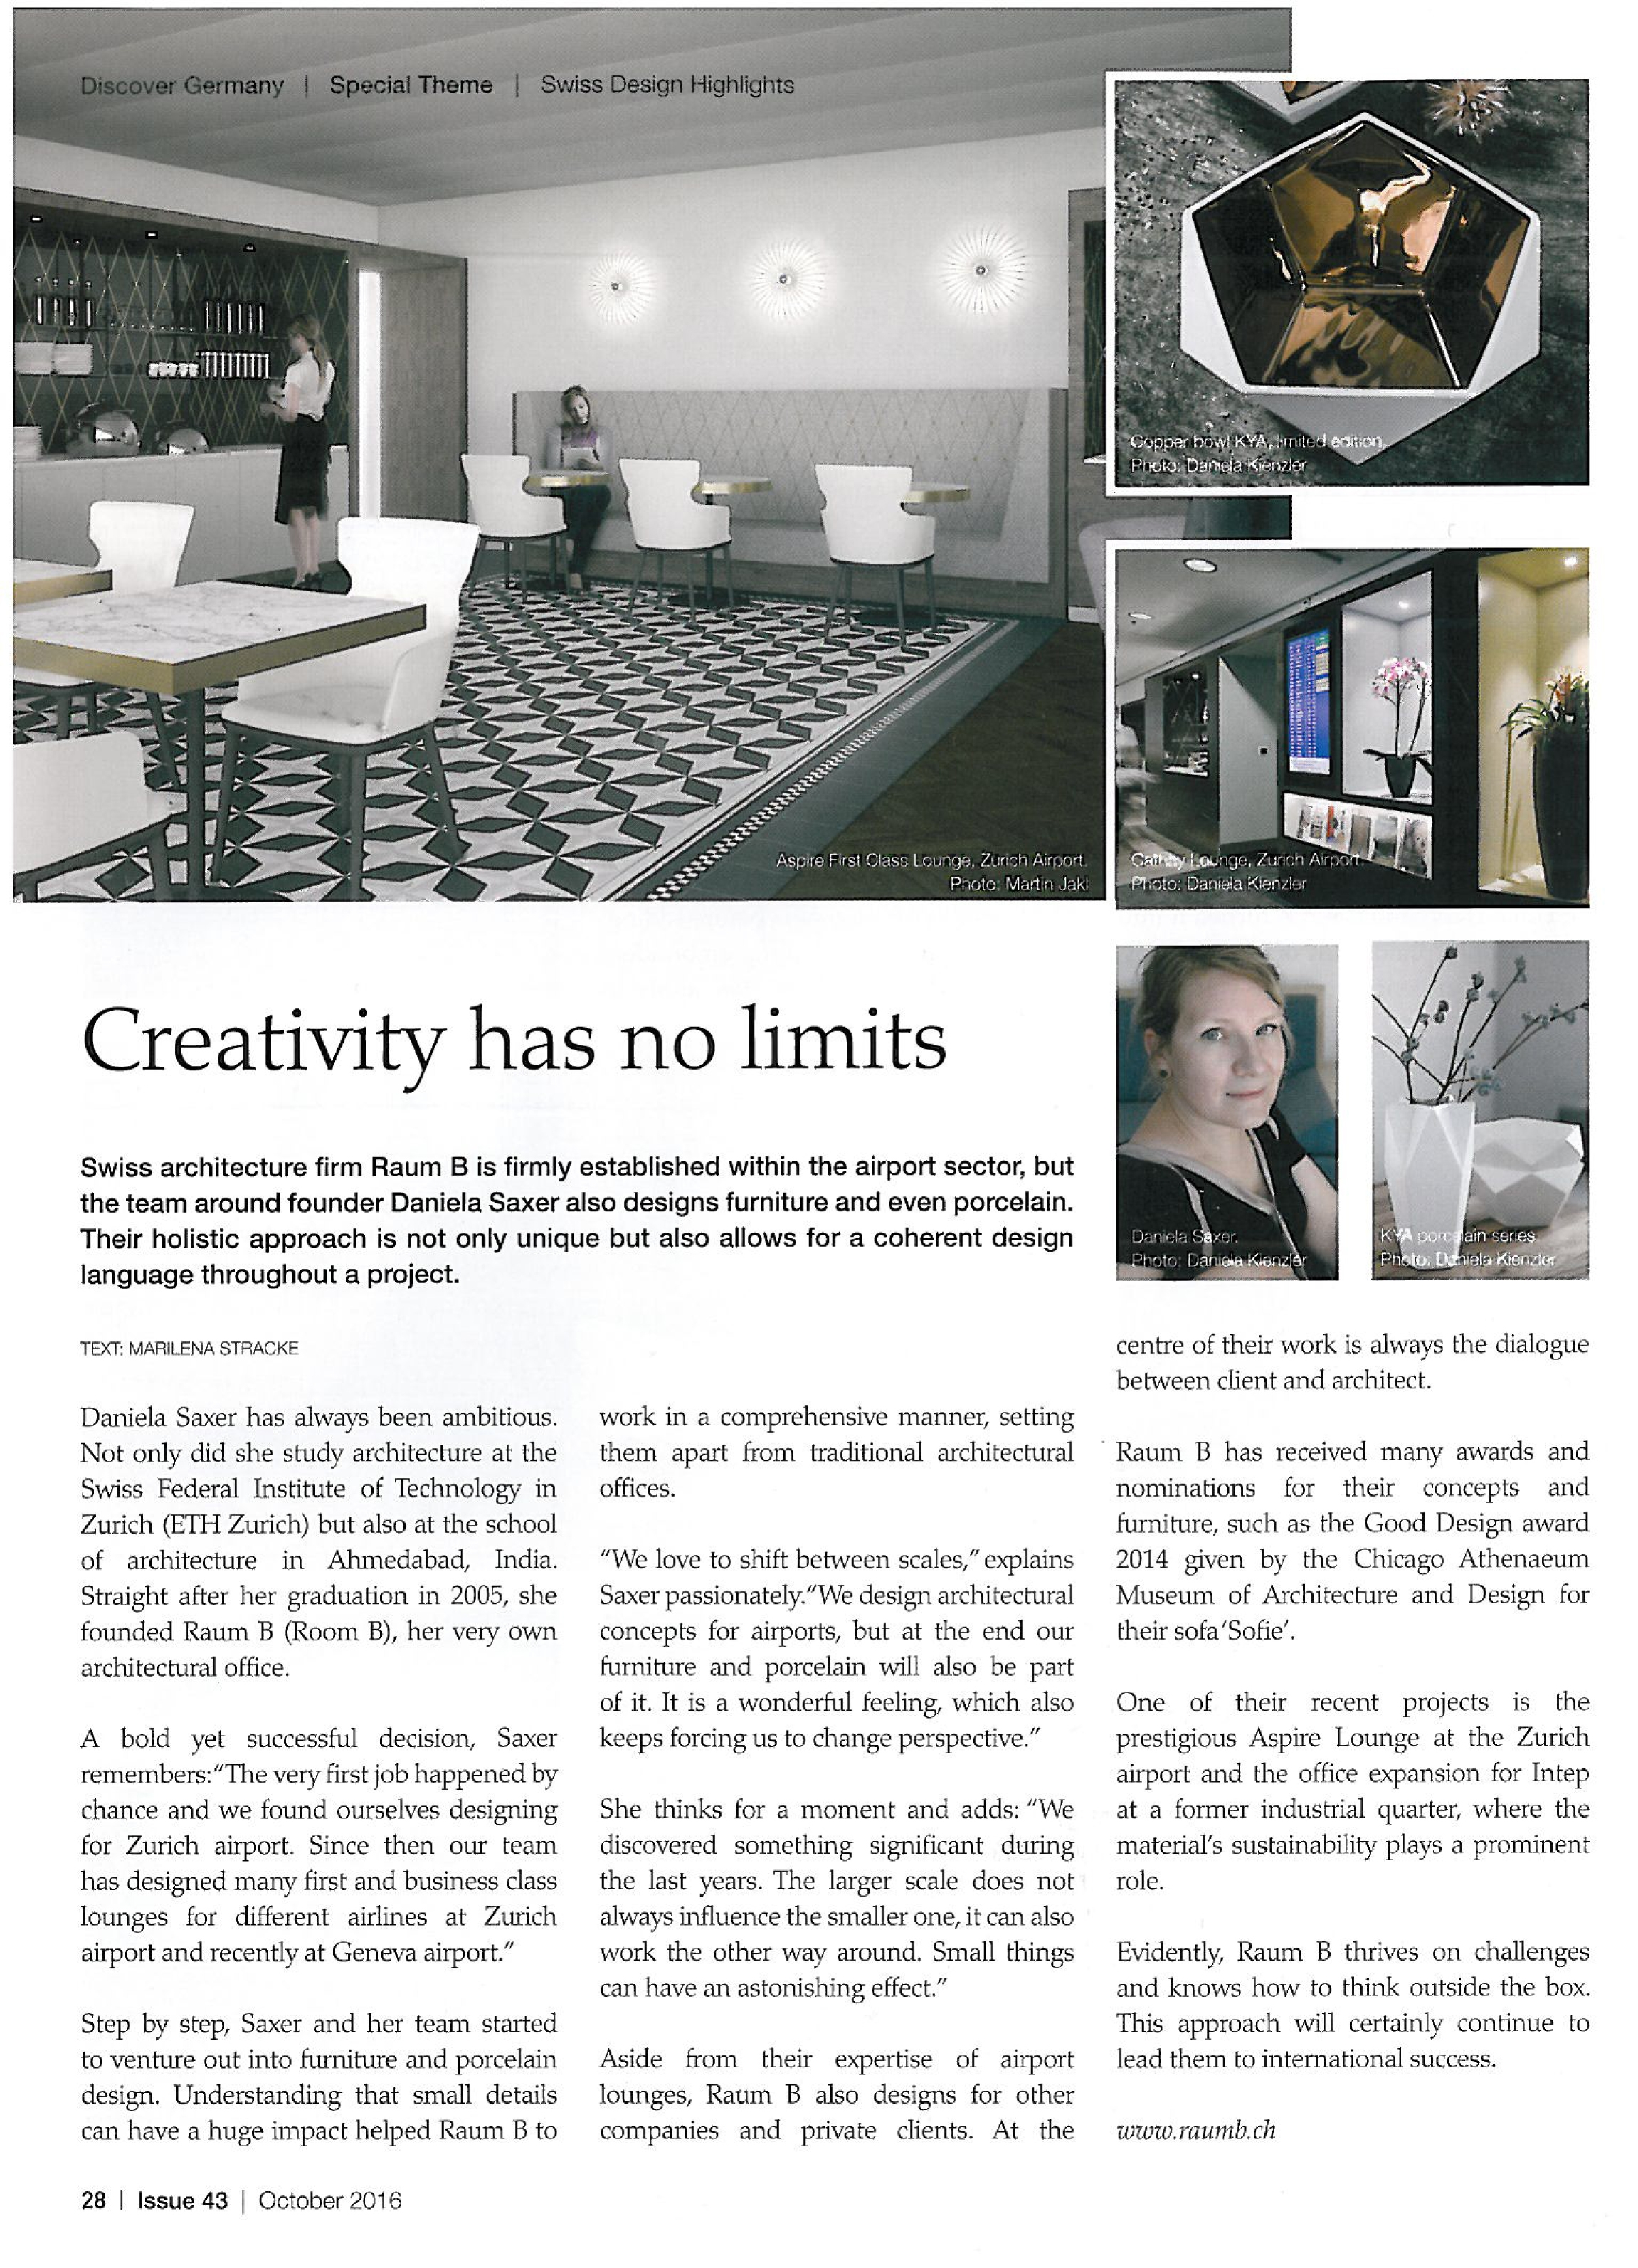 Creativity has no limits   Issue 43, October 2016, S. 28